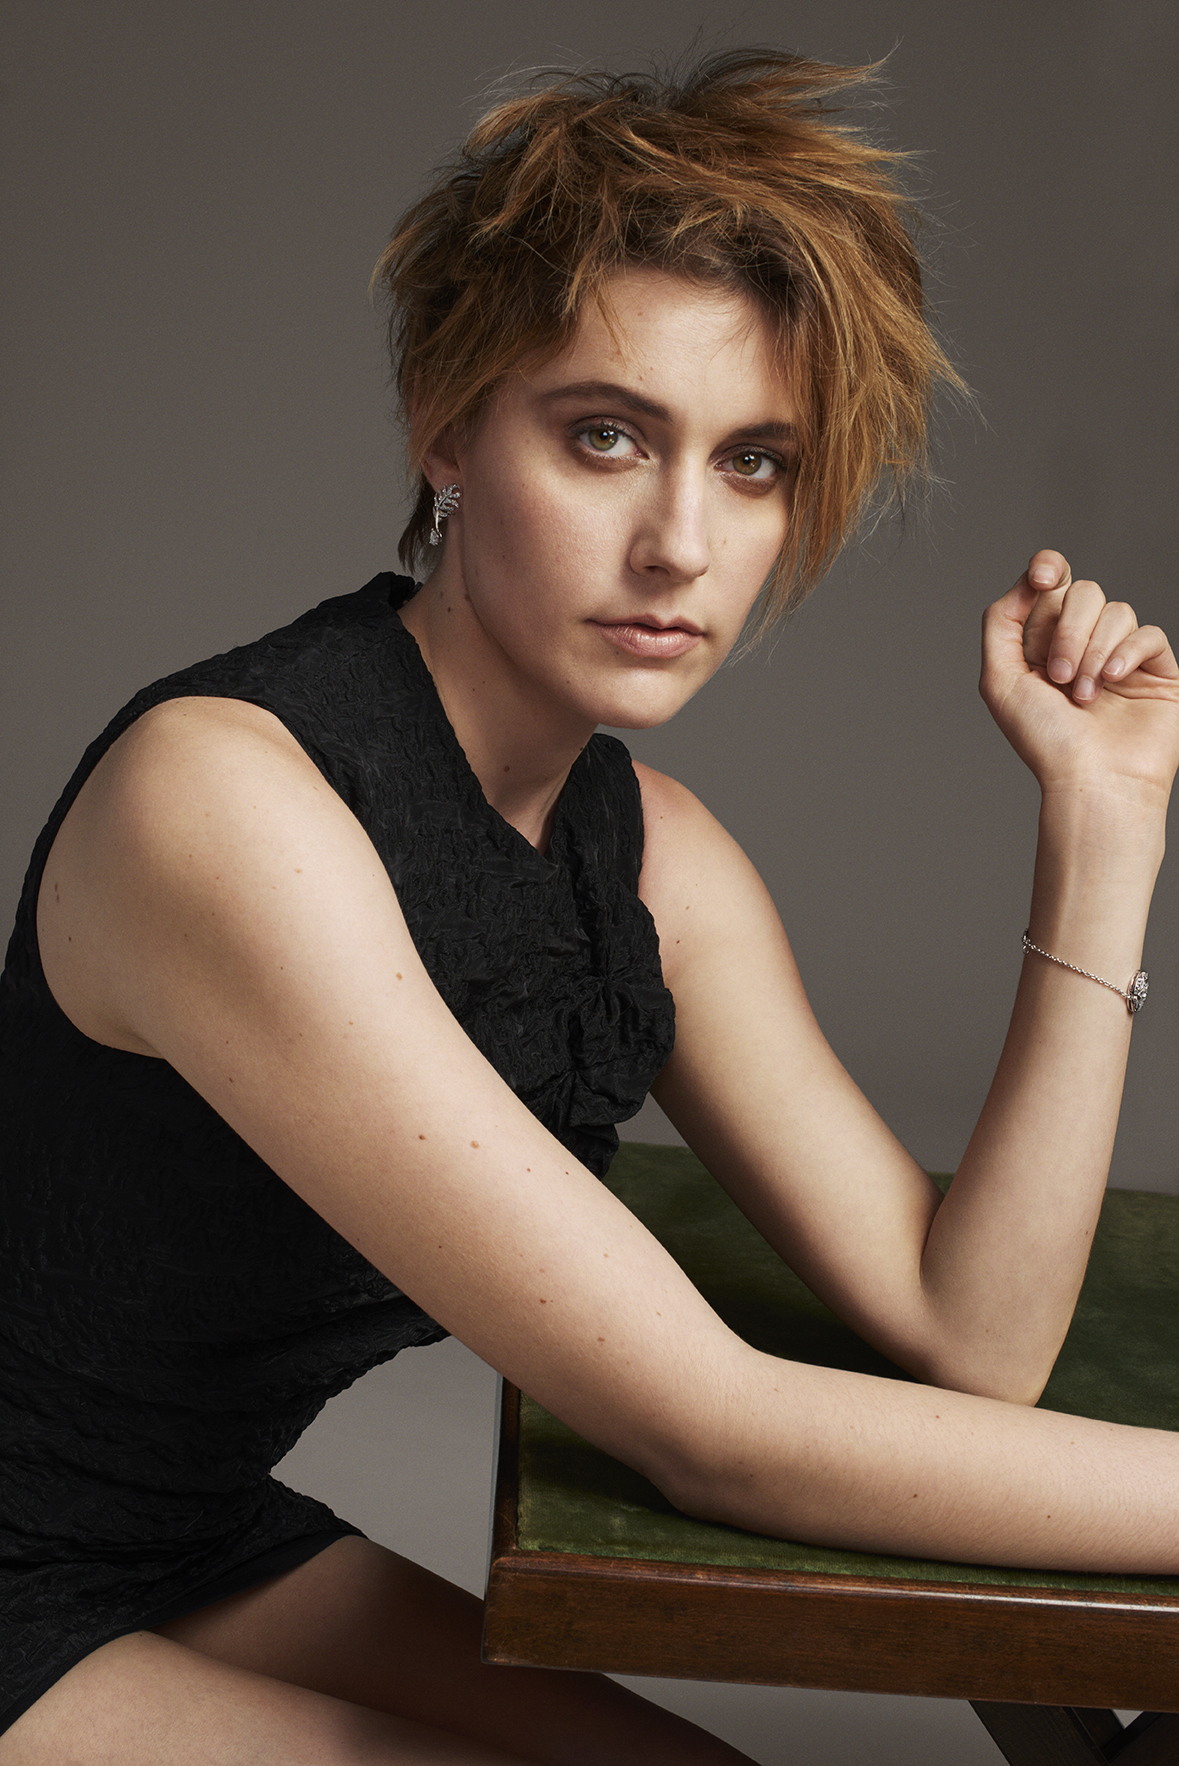 OUR INTERVIEW WITH GRETA GERWIG